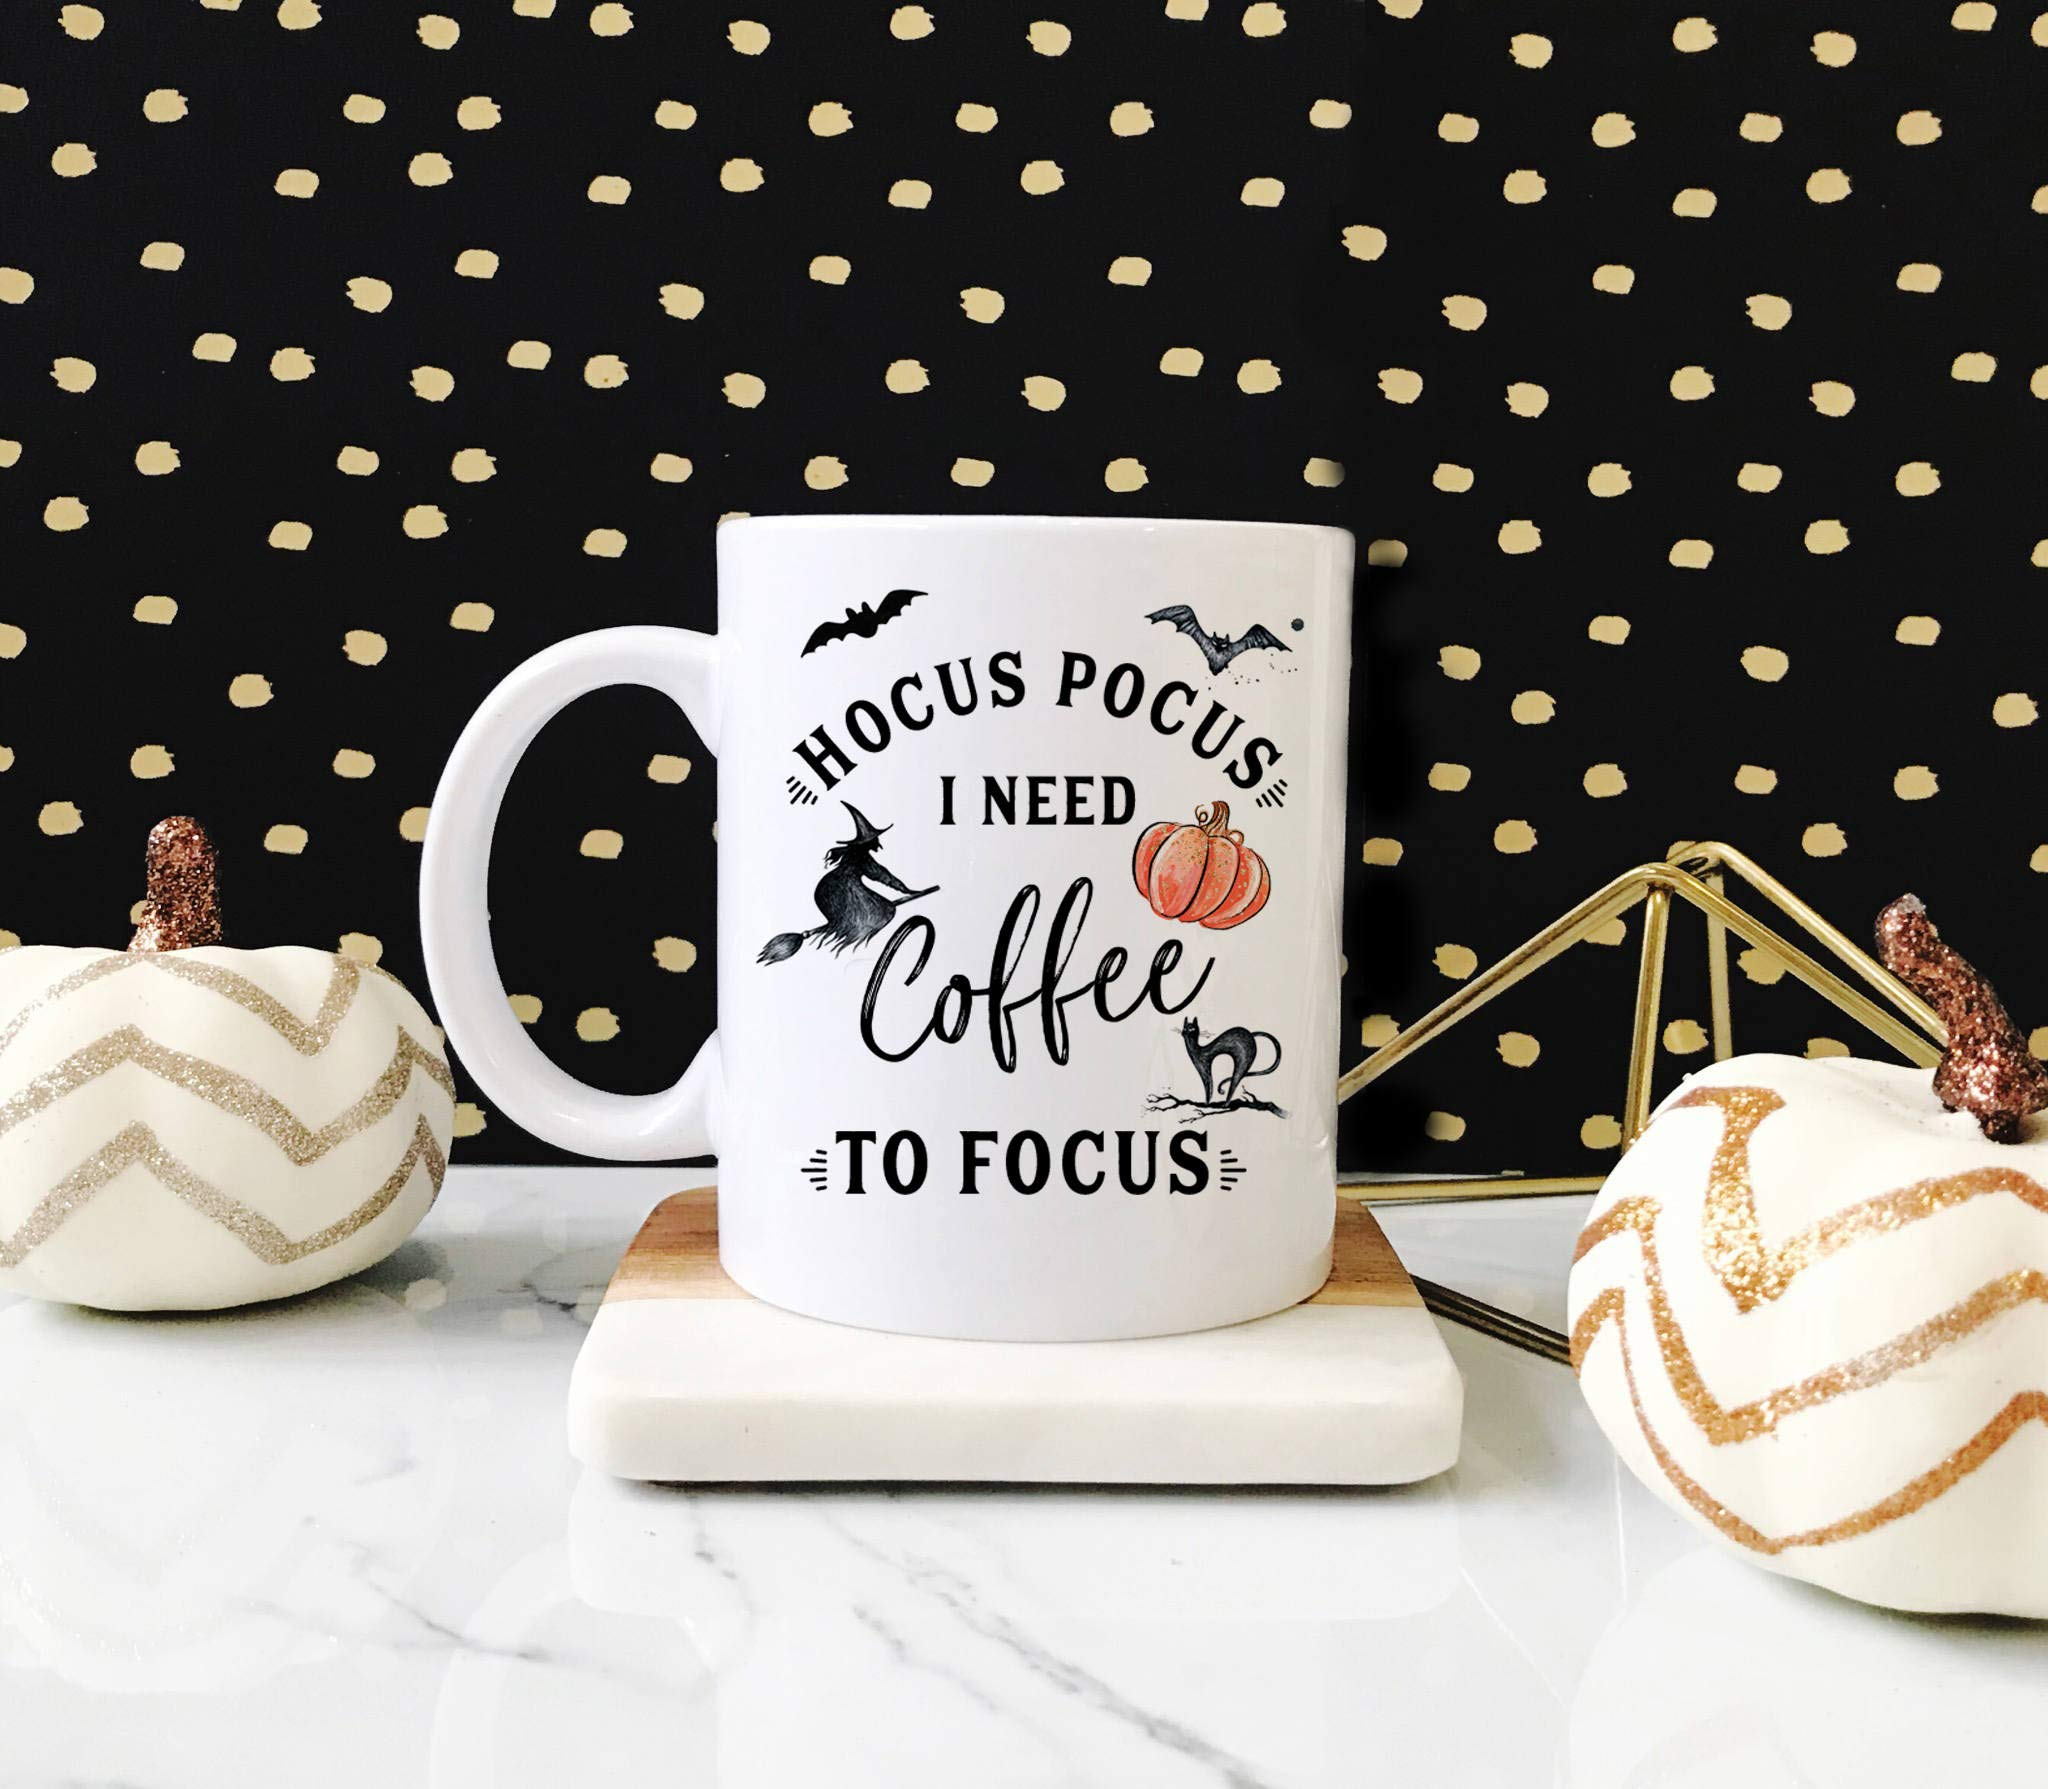 Hocus Pocus I Need Coffee To Focus Mug, Halloween Mug, Fall Mug, Fall Coffee Mug, Autumn Mug, Gift for Her, Hocus Pocus Mug, Funny Mug, Mugs